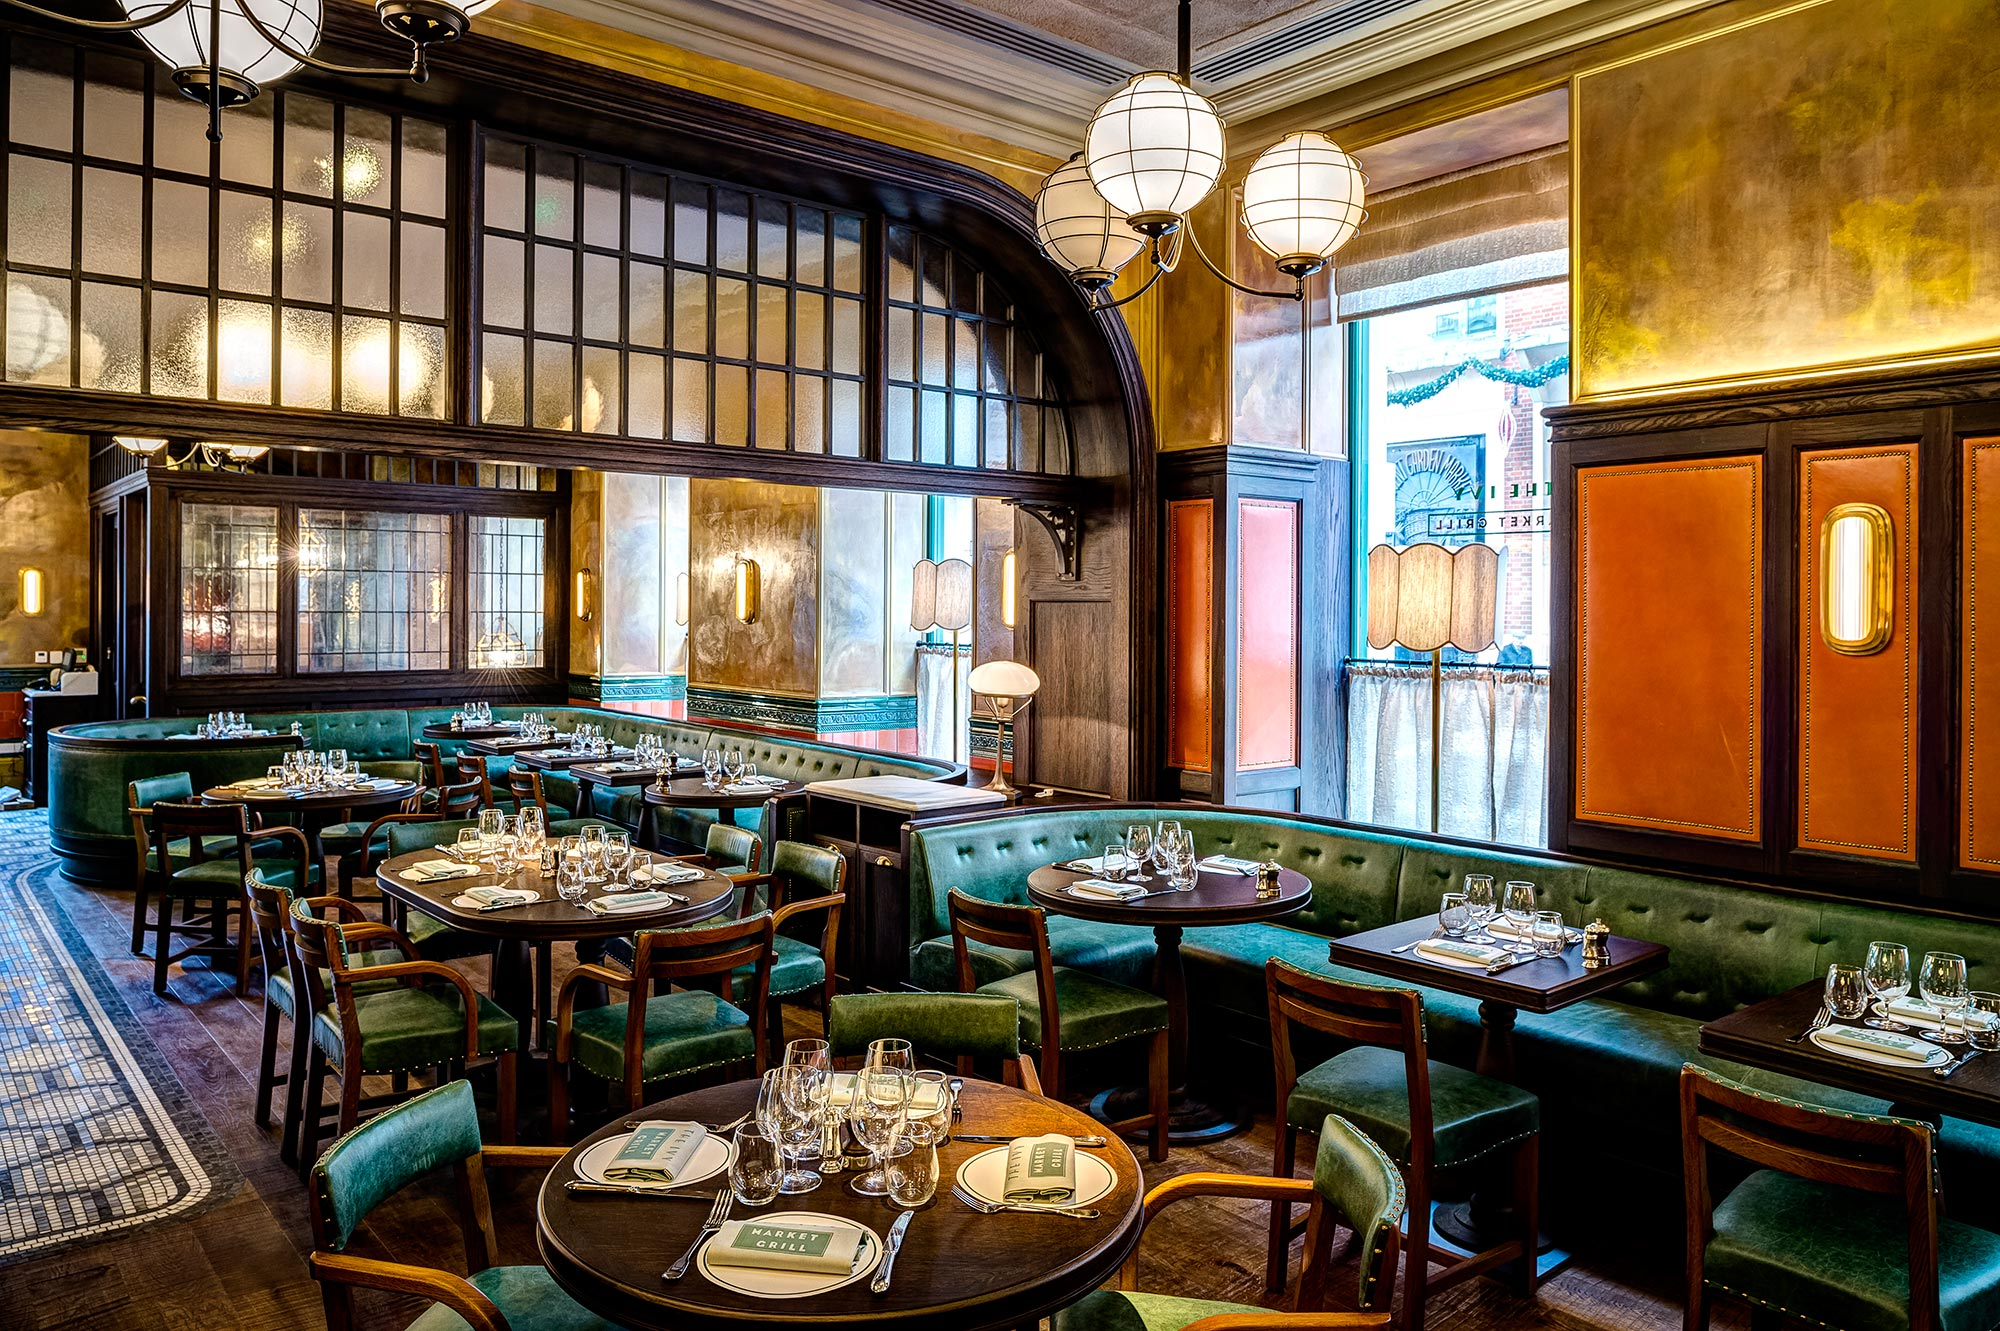 The Ivy Market Grill restaurant by Paul Winch Furness - The Ivy Market Grill